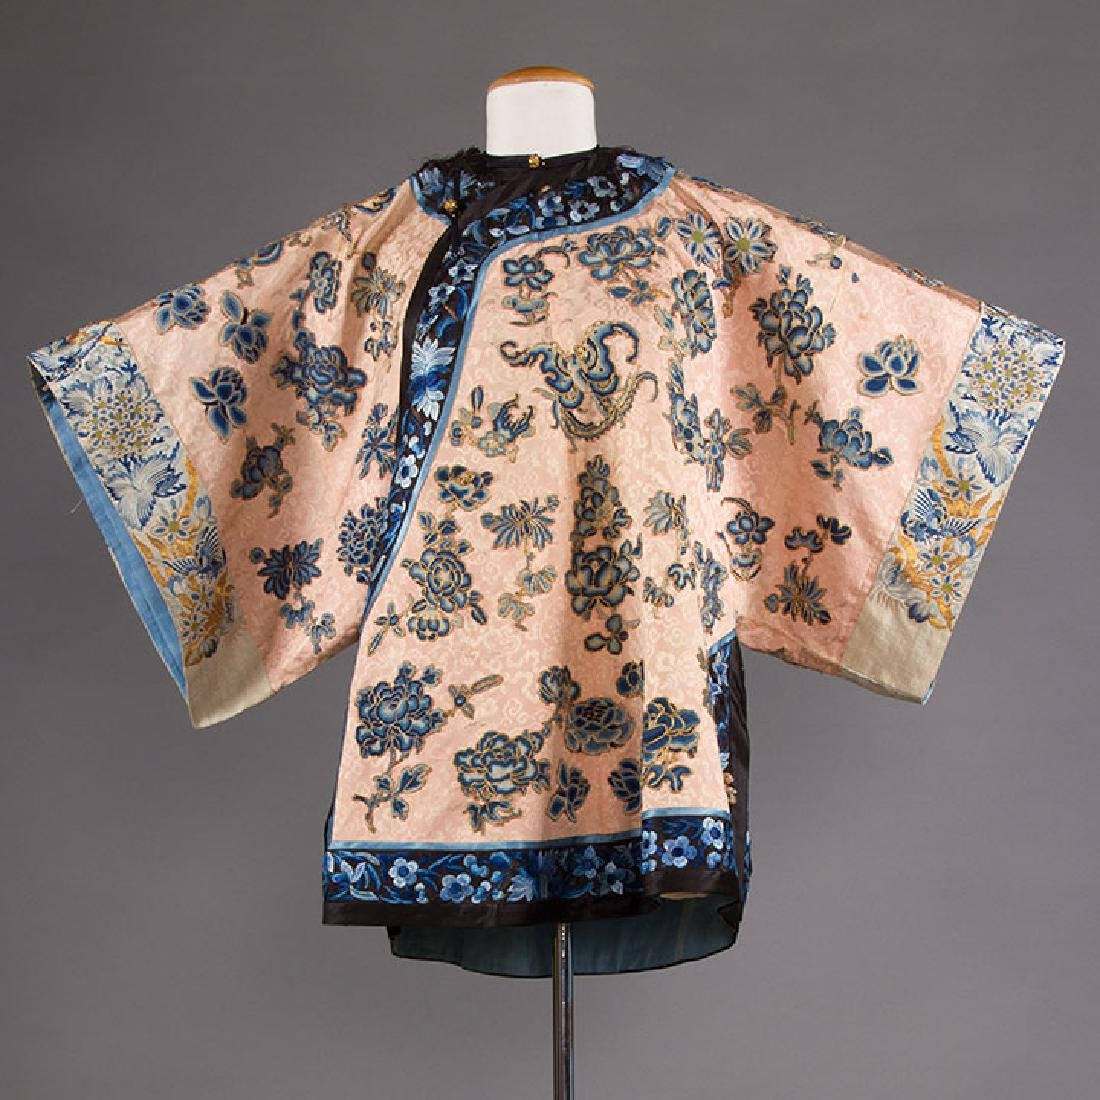 BLUE EMBROIDERED PINK JACKET, CHINA